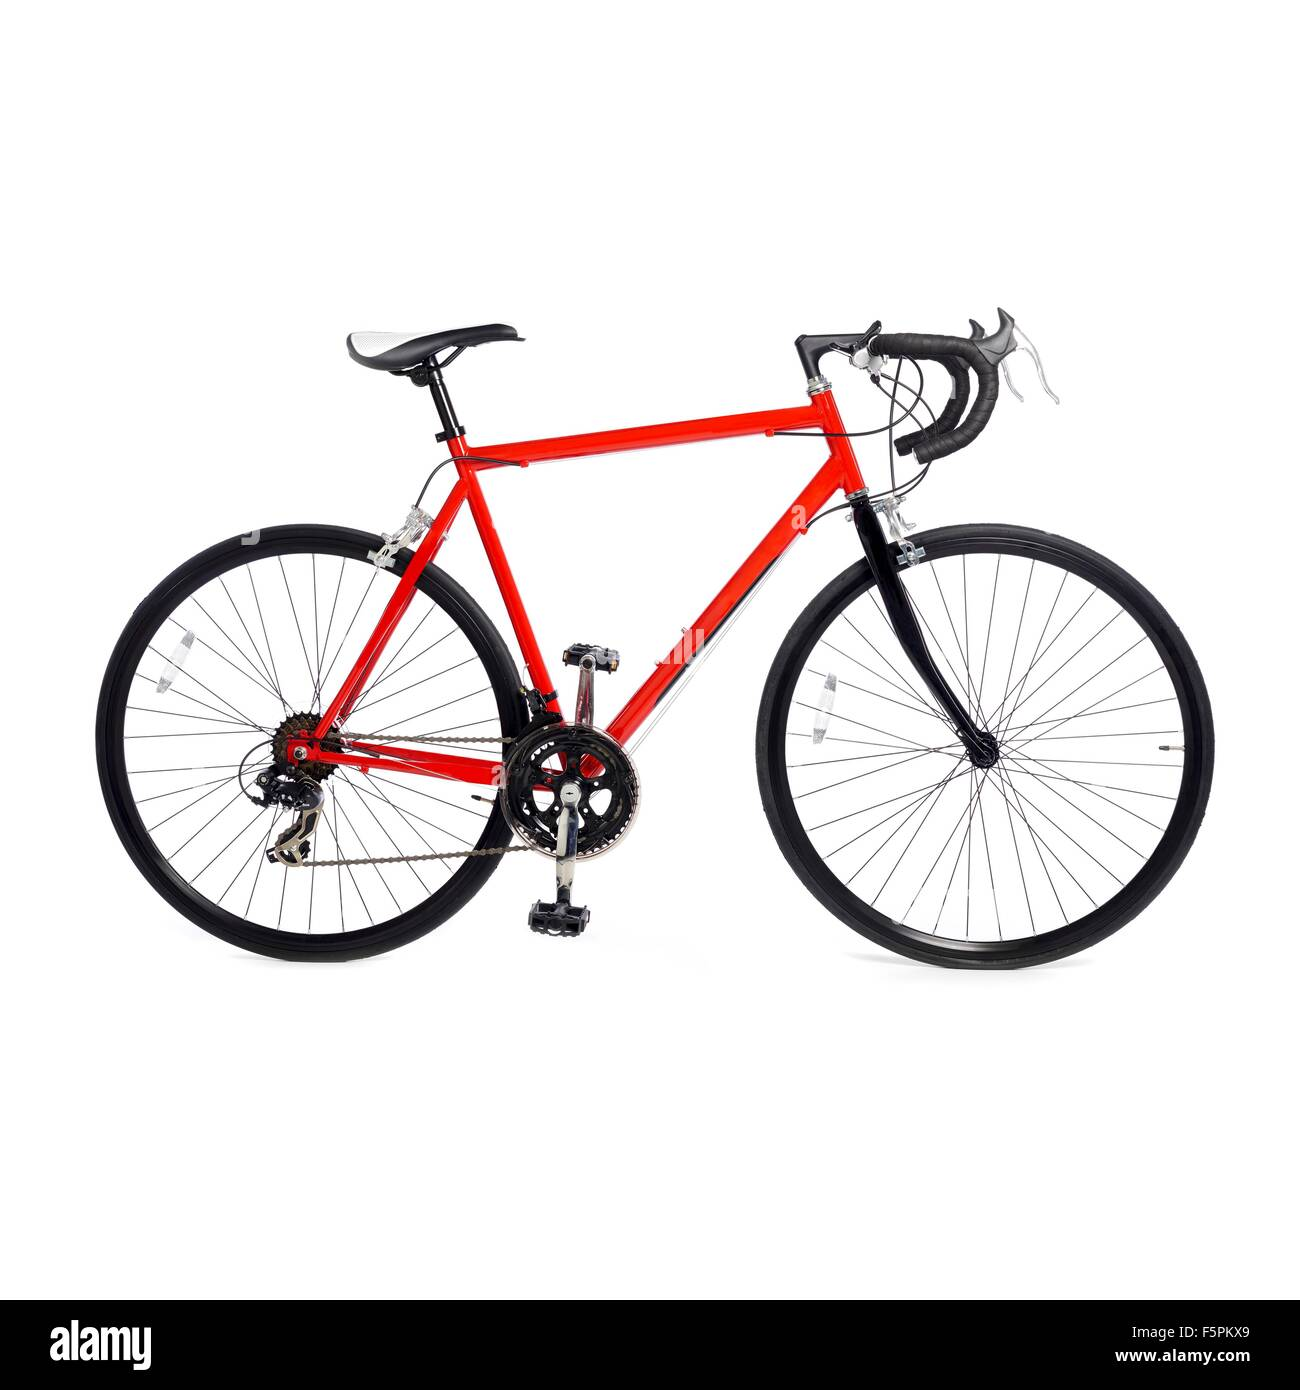 Road bike against a white background. - Stock Image